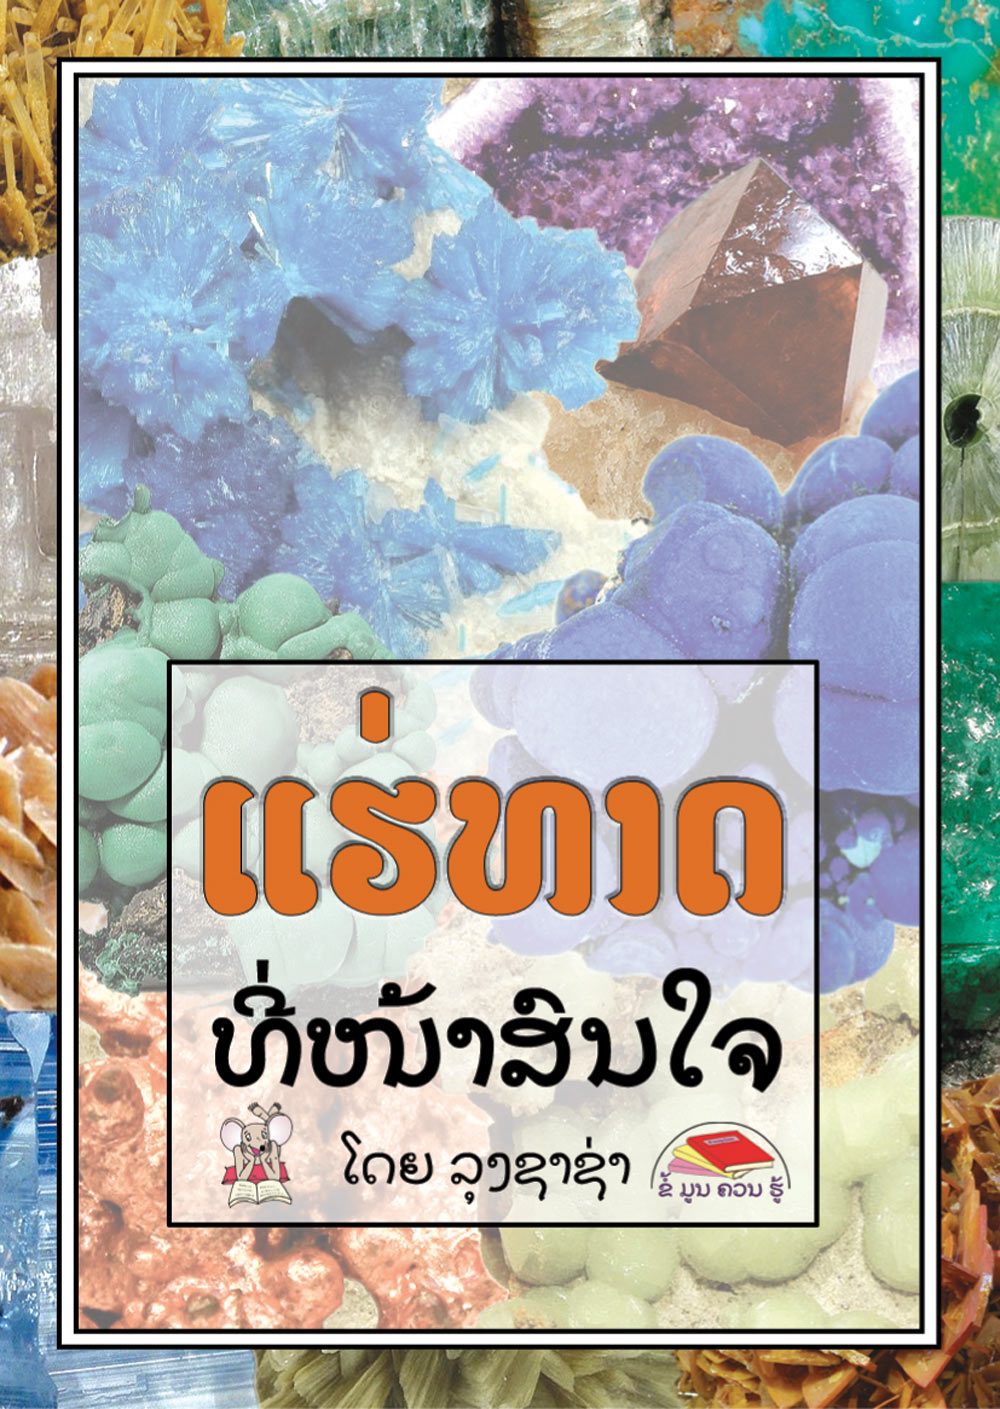 Minerals are Fascinating! large book cover, published in Lao language